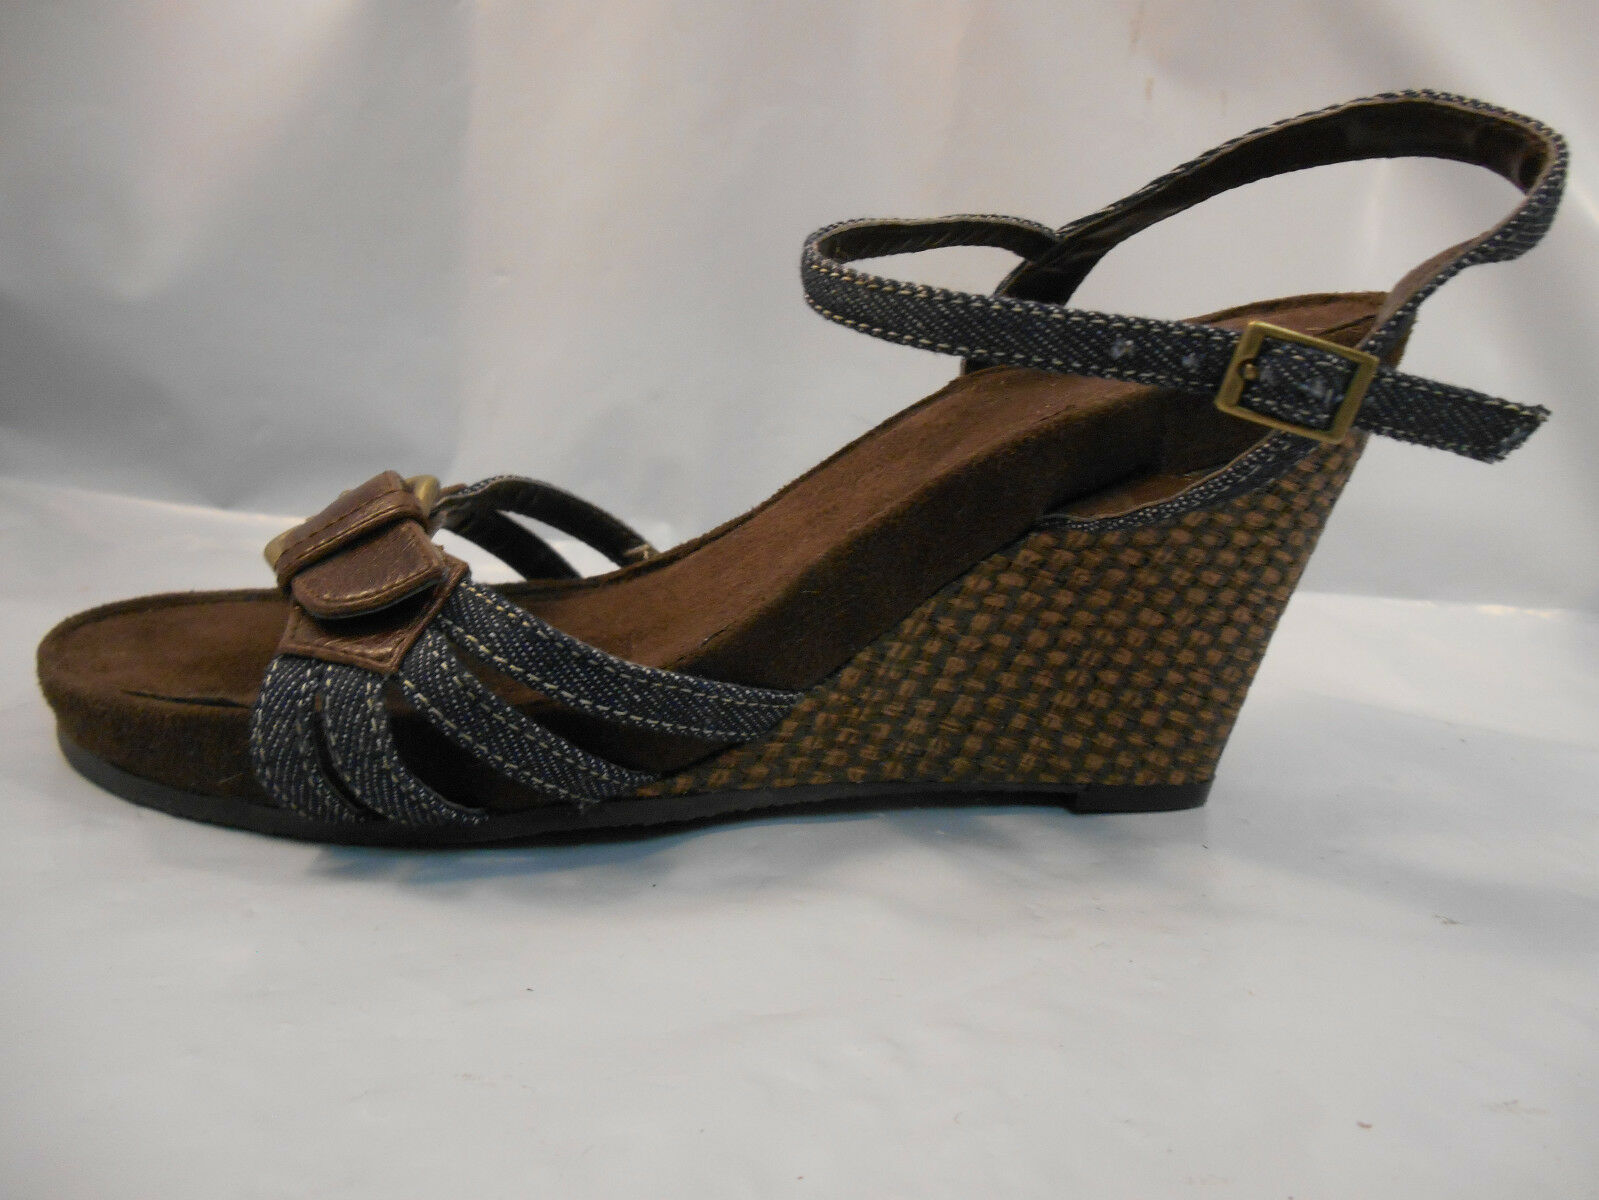 585fa398758 Bass Brown and Blue Denim Wedge Heels Sandals Women s Size 7 M - aijaz.info